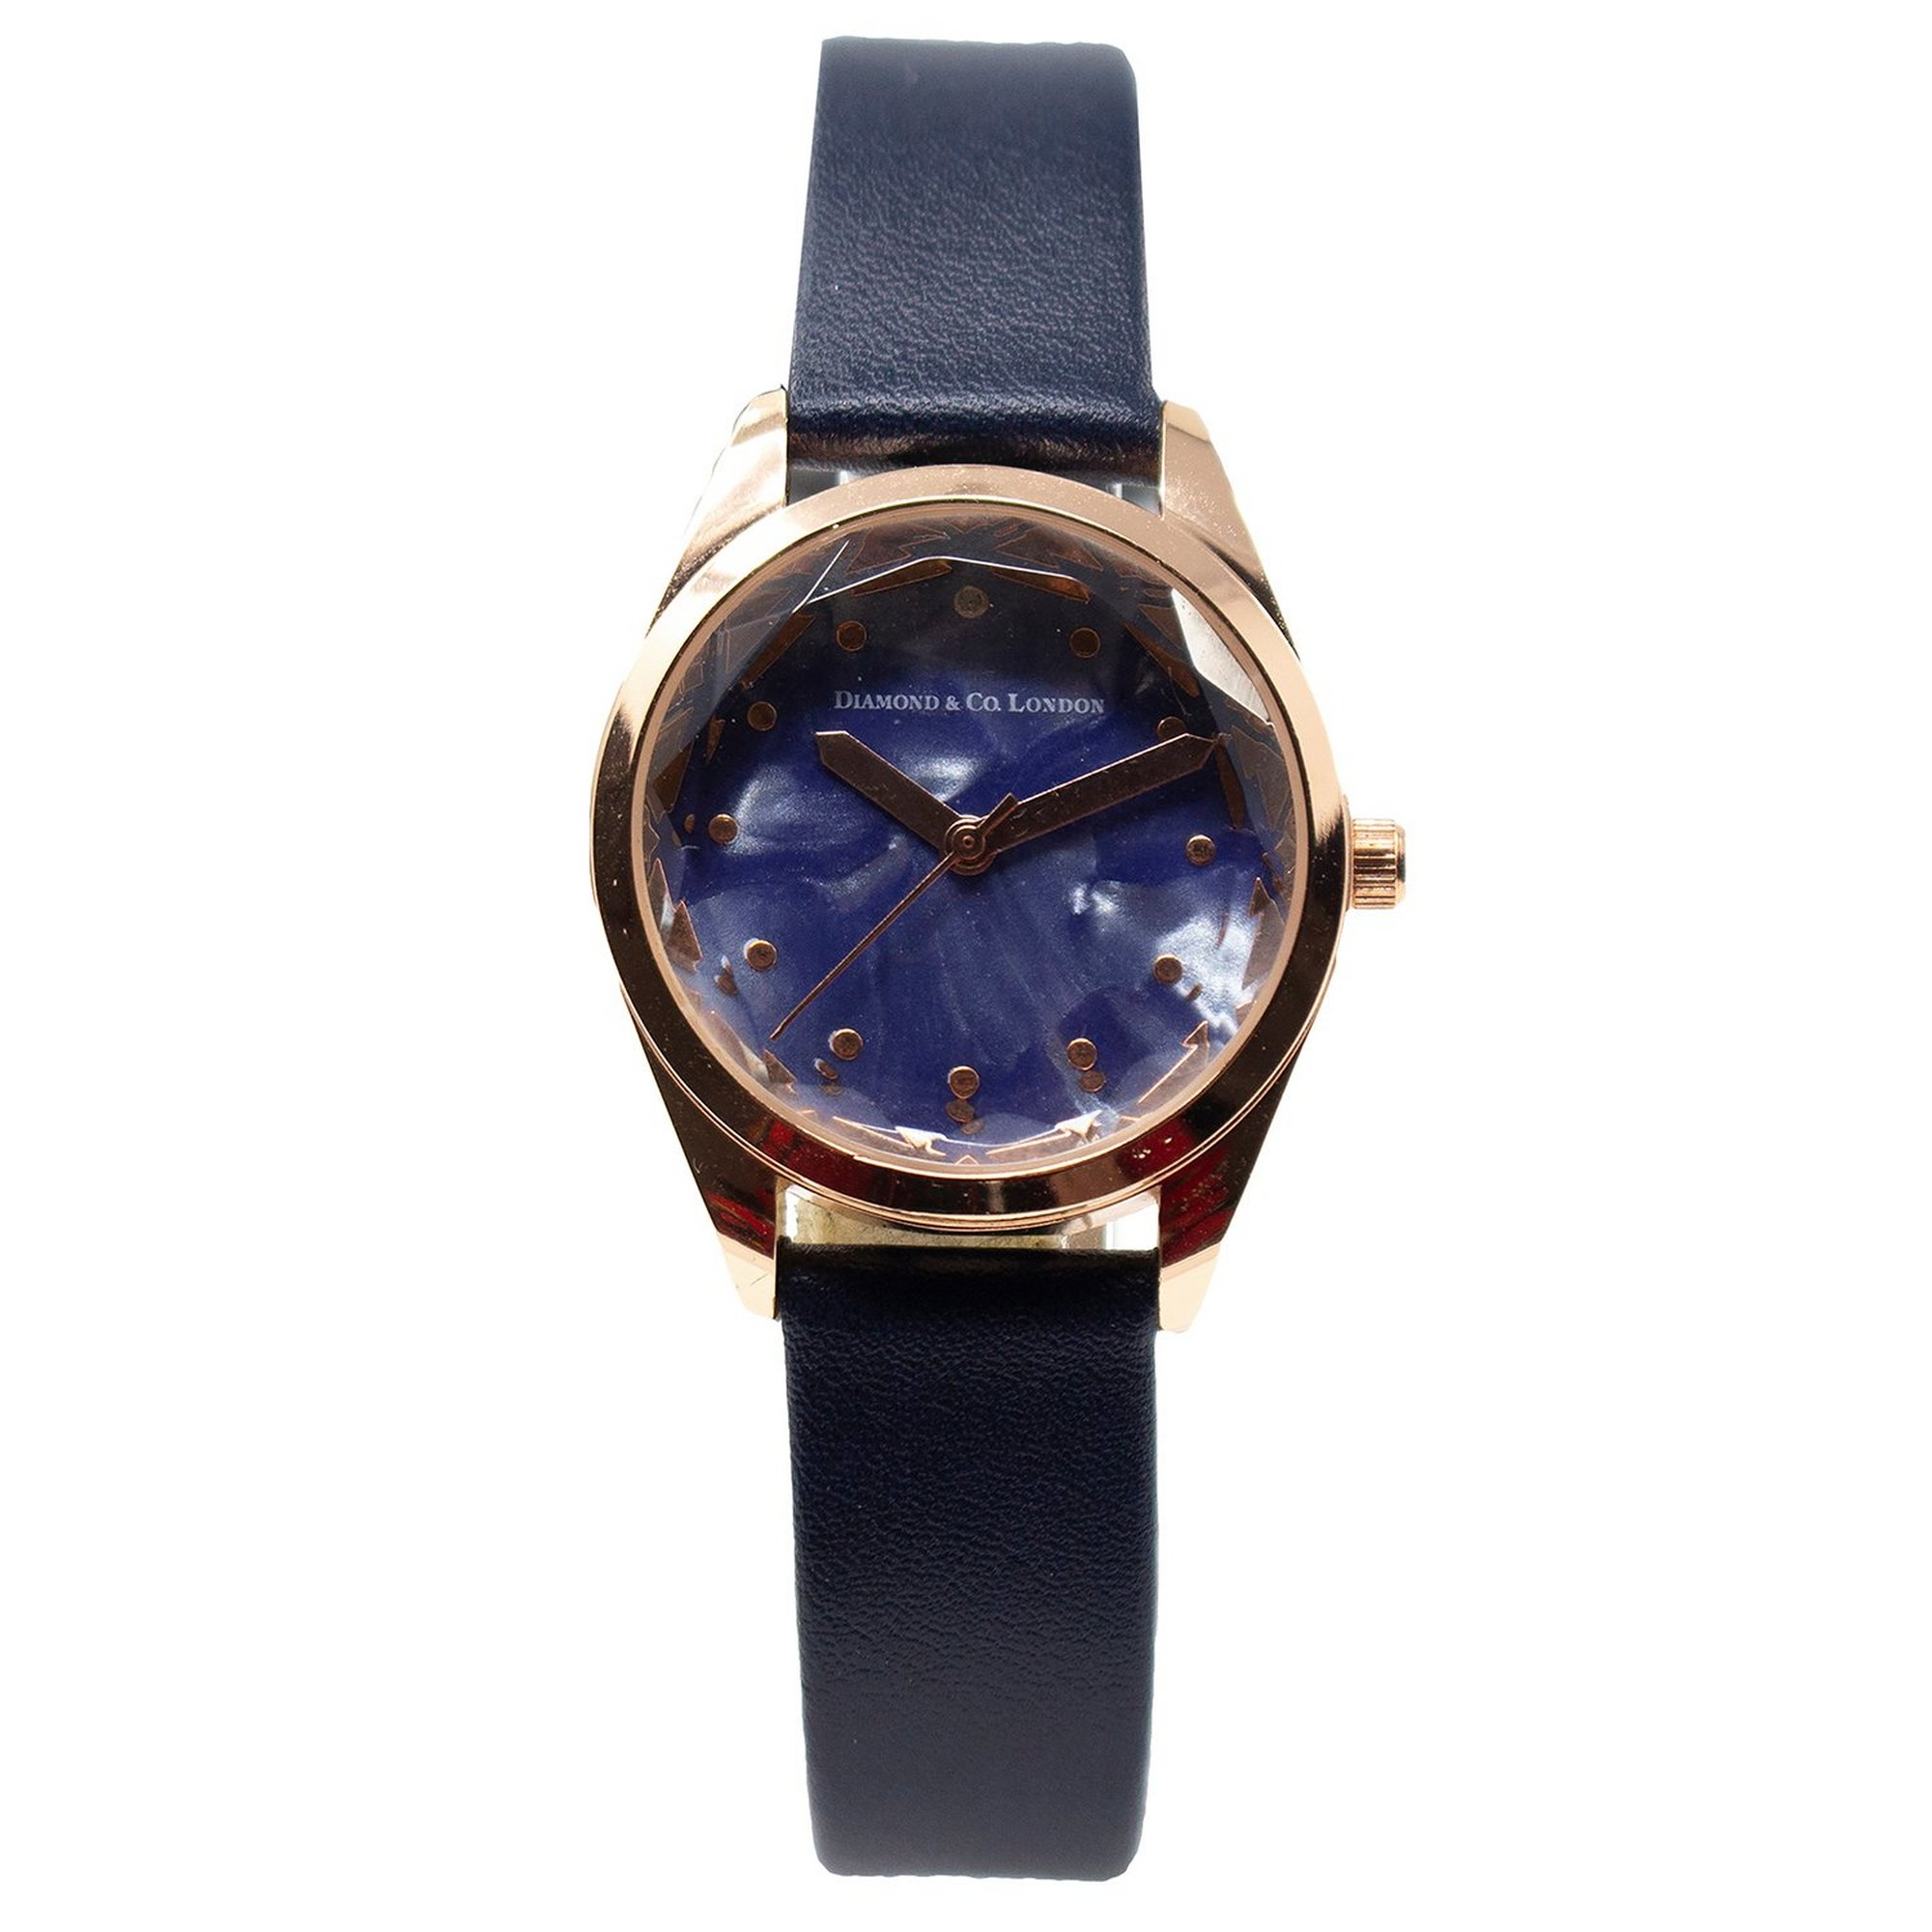 Image of Diamond and Co Black Strap Analogue Watch with Blue Dial